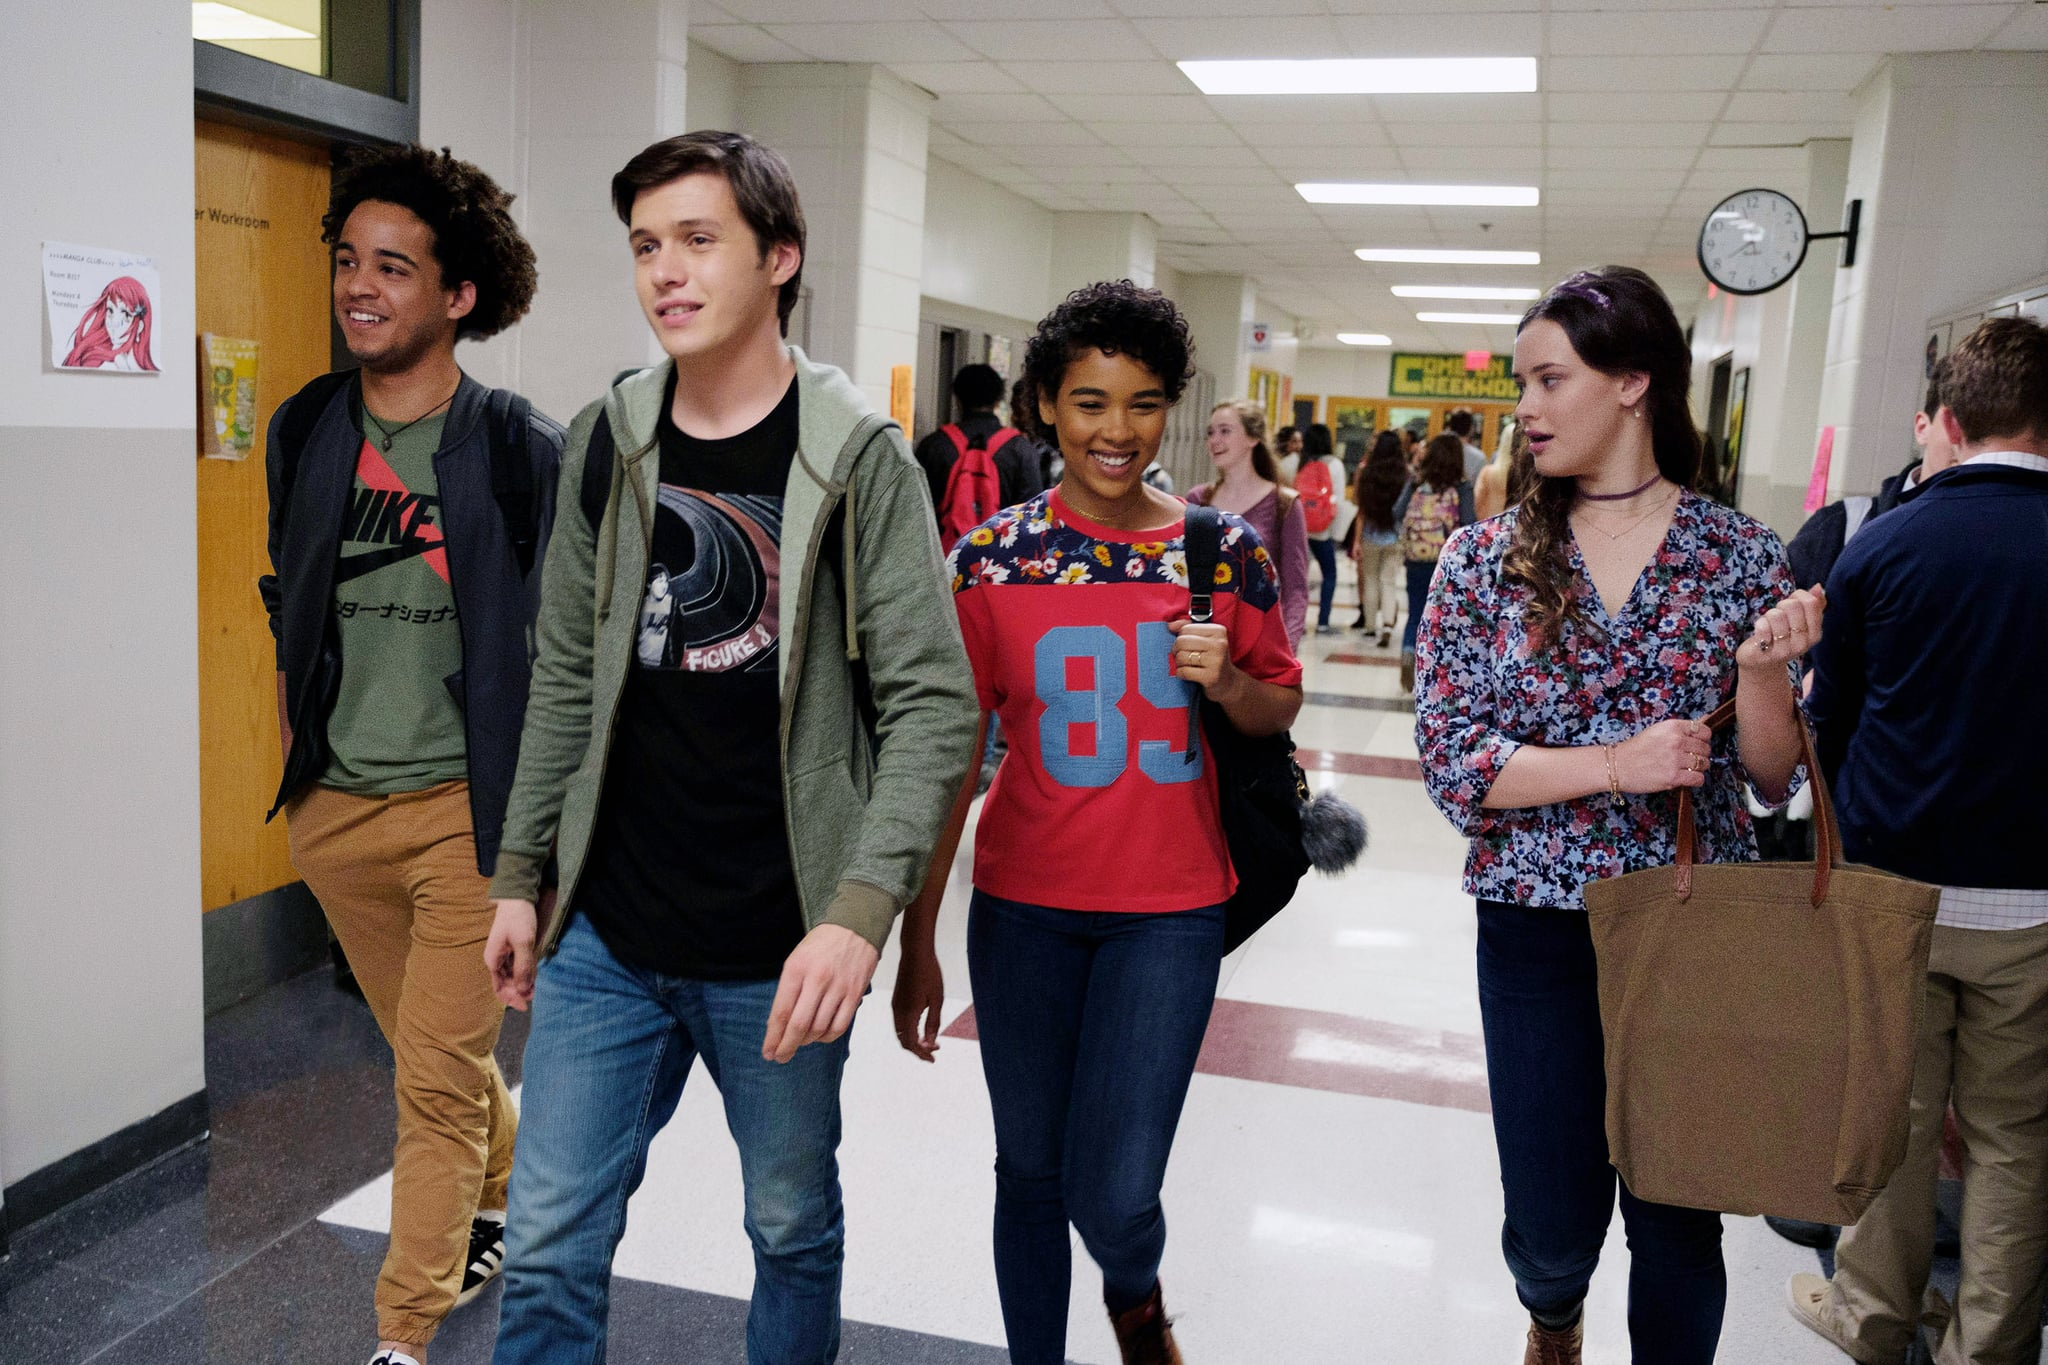 LOVE, SIMON, from left: Jorge Lendeborg Jr., Nick Robinson, Alexandra Shipp, Katherine Langford, 2018. ph: Ben Rothstein /TM & copyright  Twentieth Century Fox Film Corp. All rights reserved. /Courtesy Everett Collection